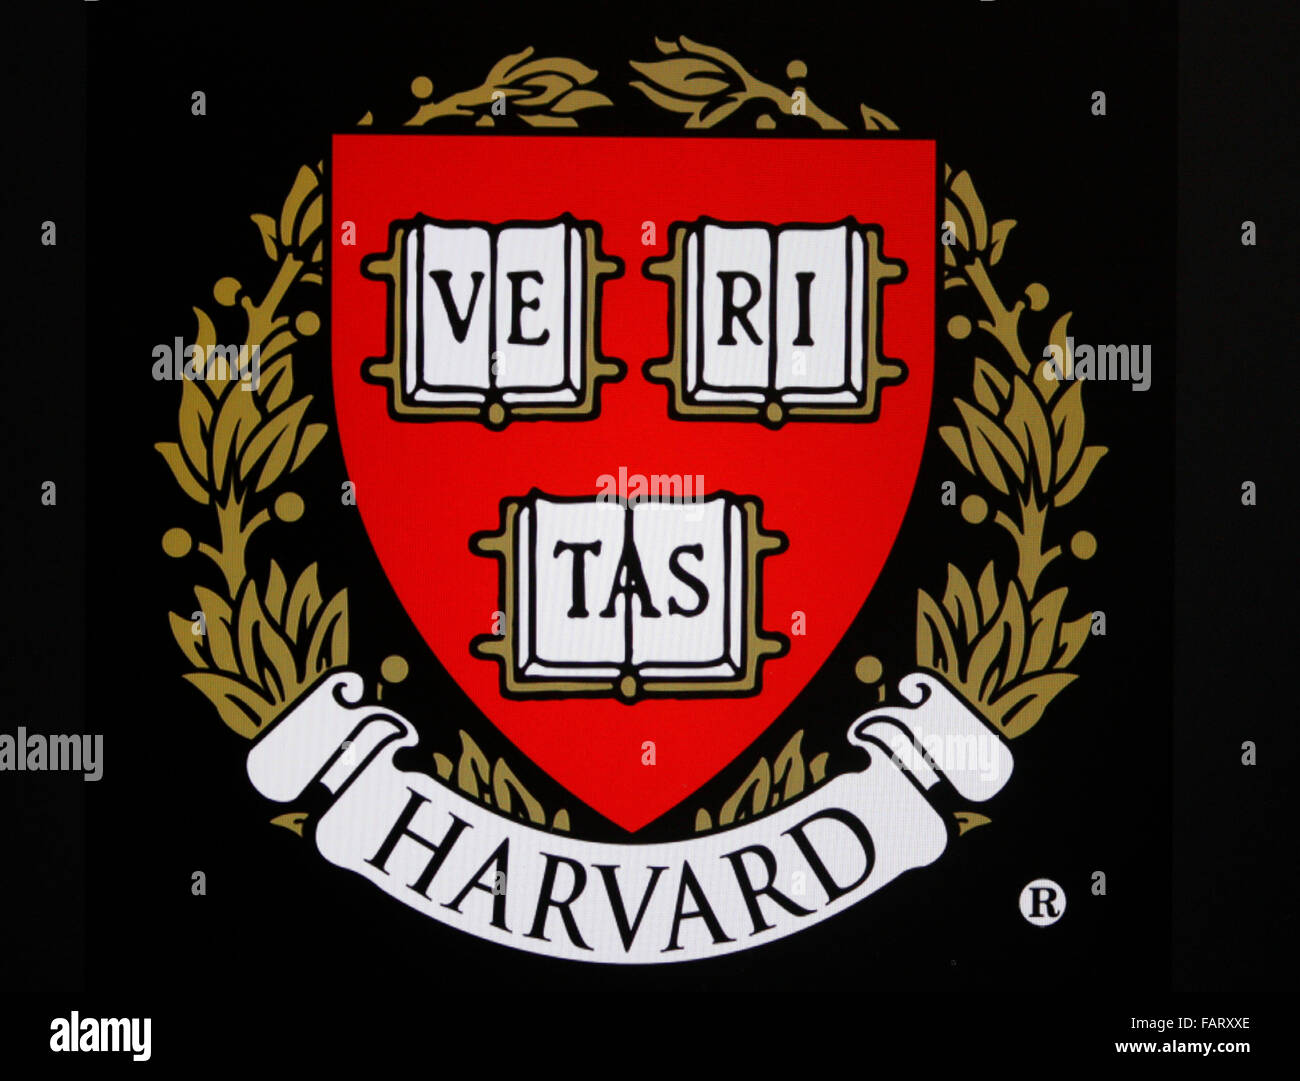 Markenname: 'Harvard University', Berlin. - Stock Image